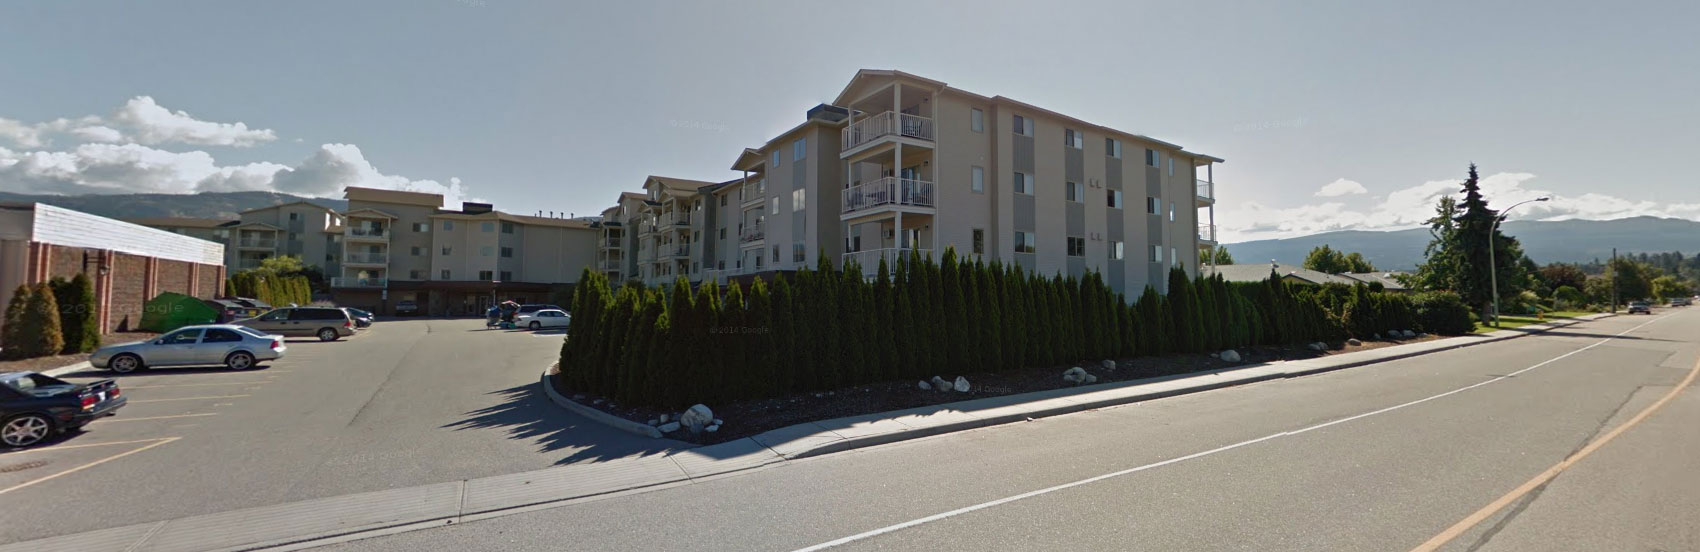 Spring Valley West are Kelowna rental apartments located on Hwy 33 in Rutland.